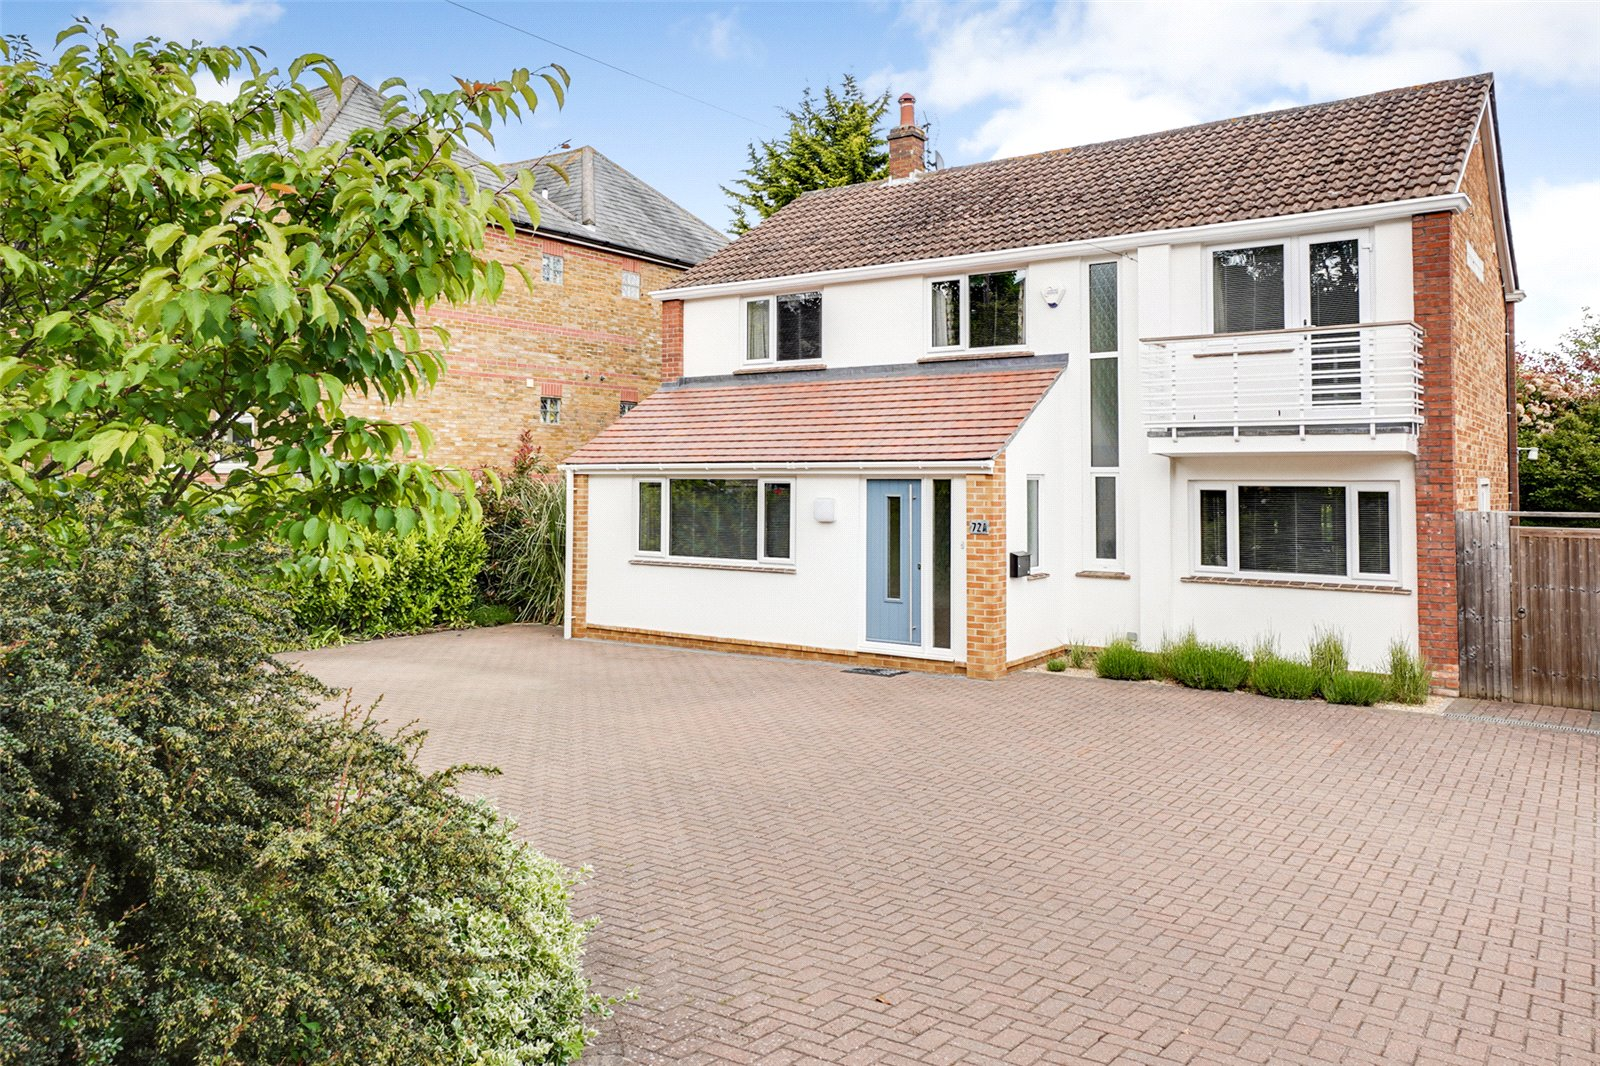 4 bed house for sale in London Road, Maidstone  - Property Image 1